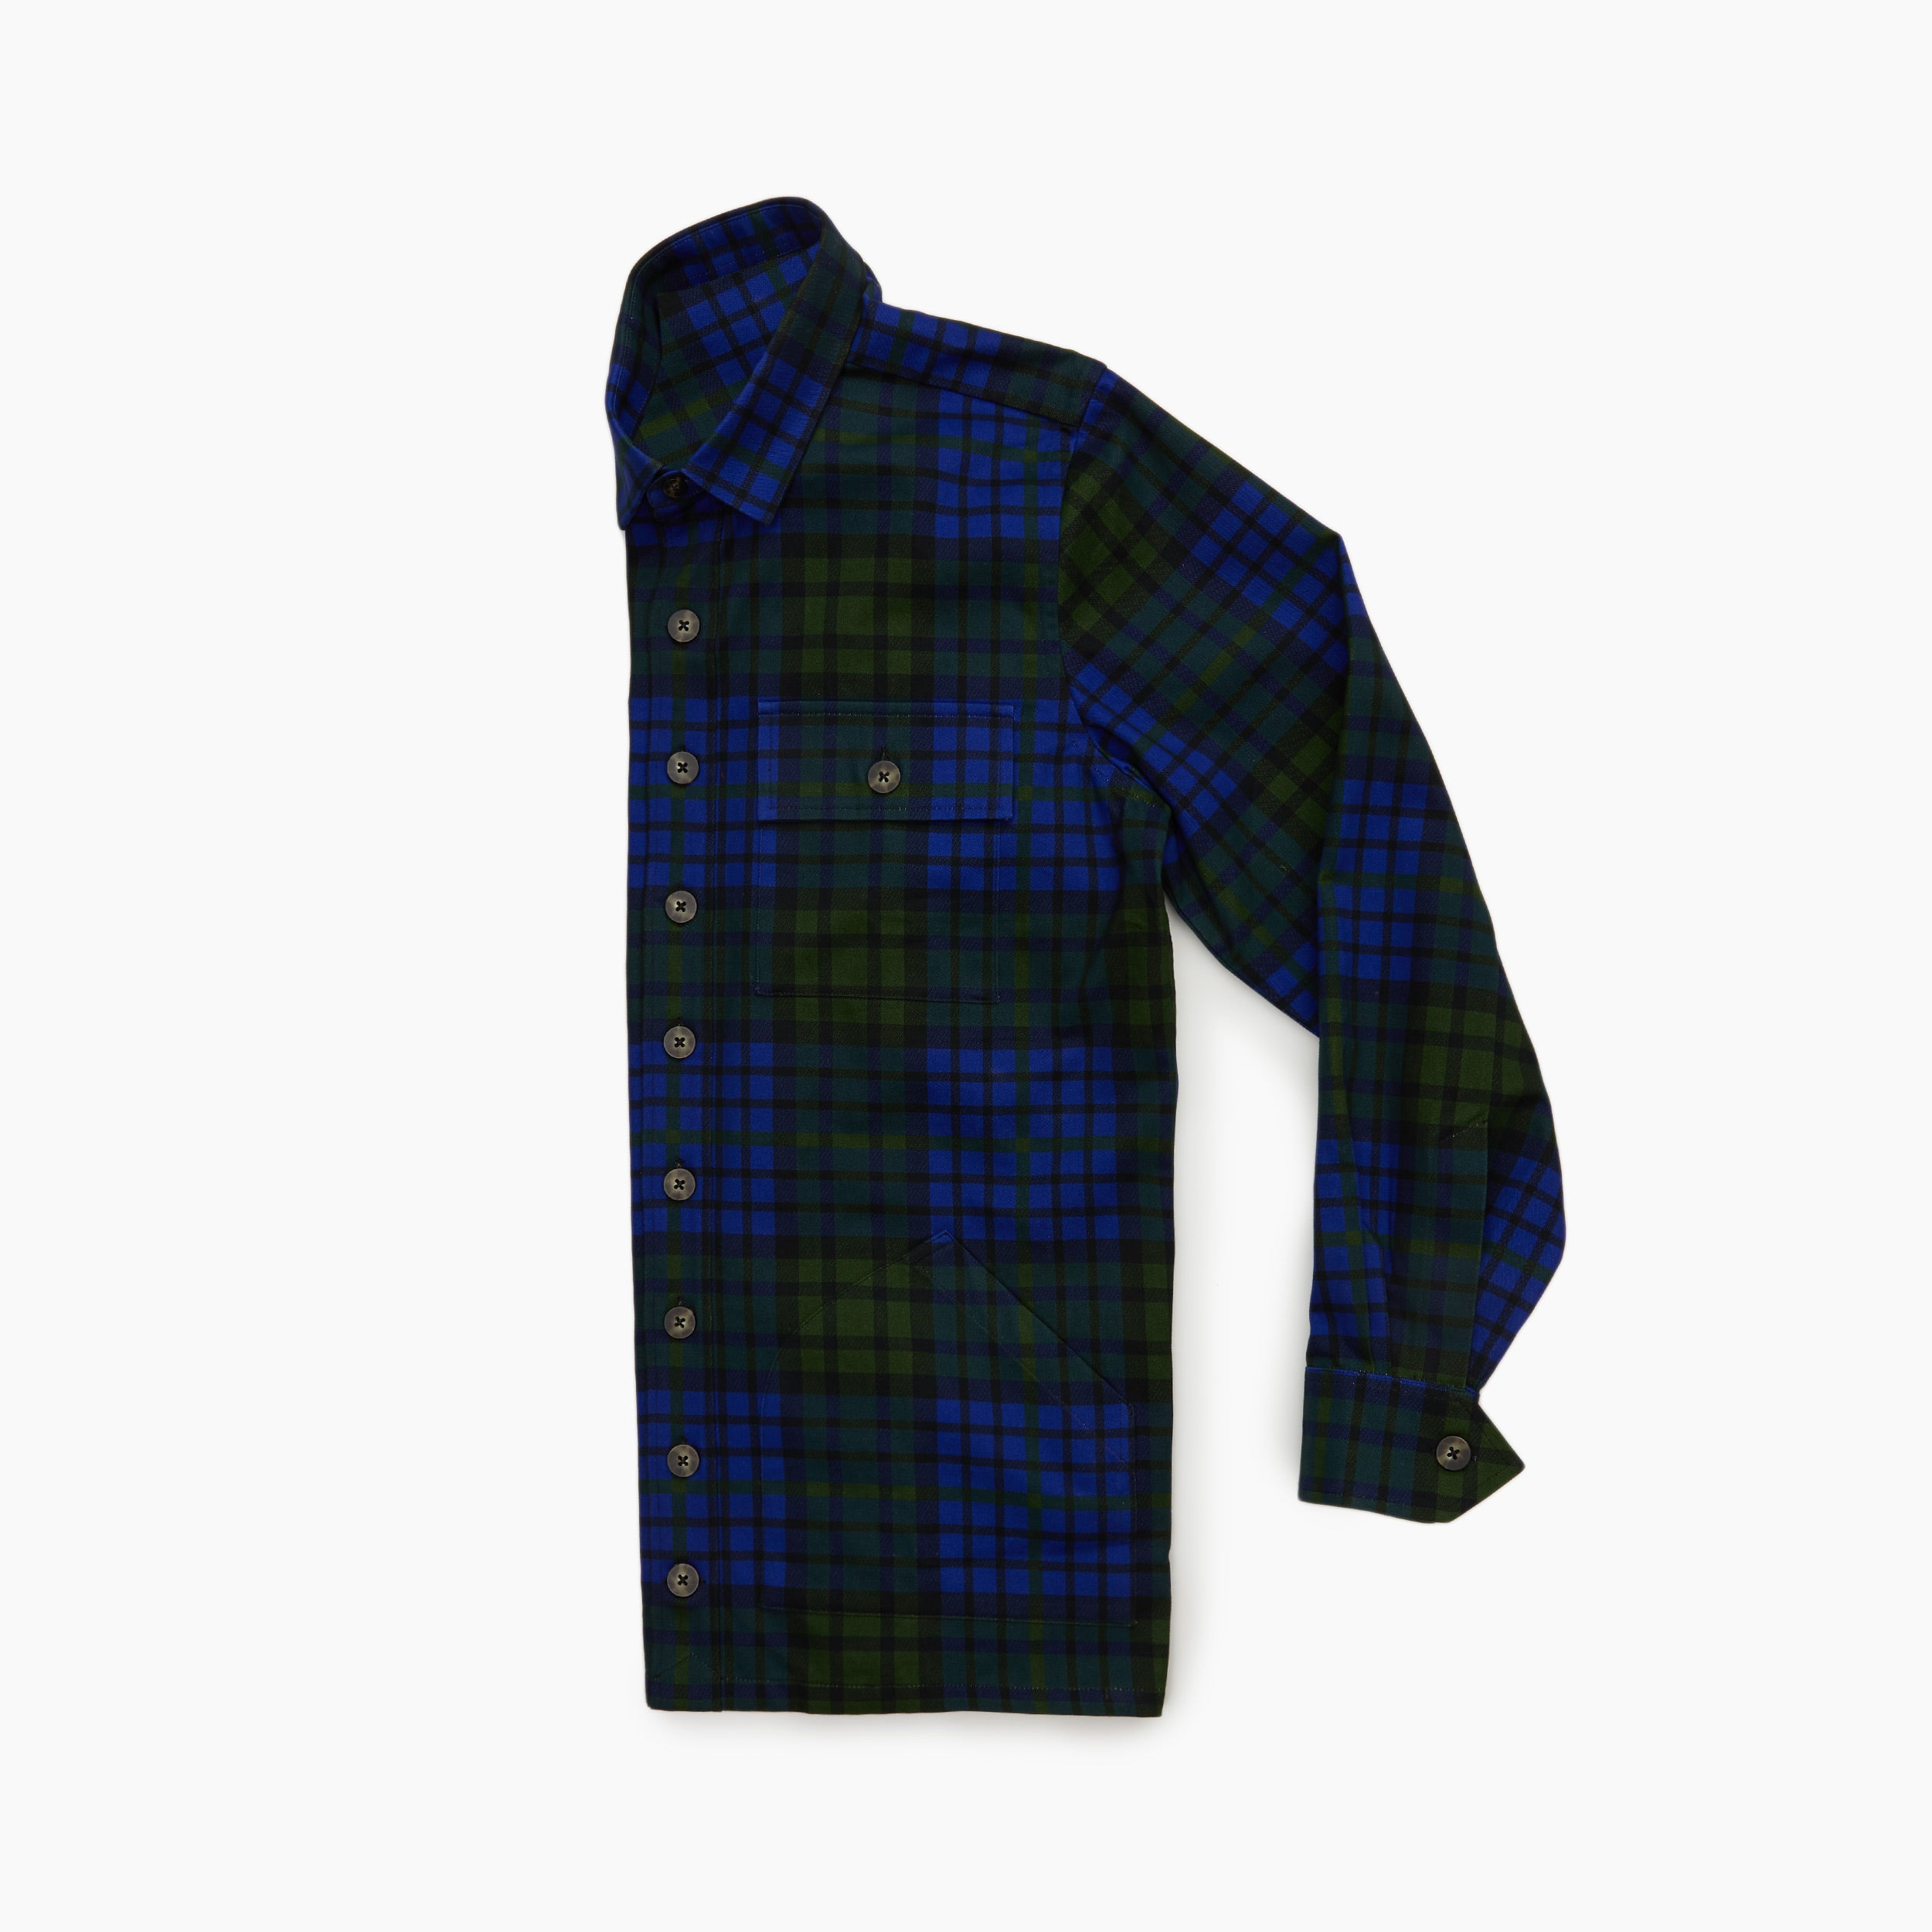 The Kumar Plaid Shirt Jacket